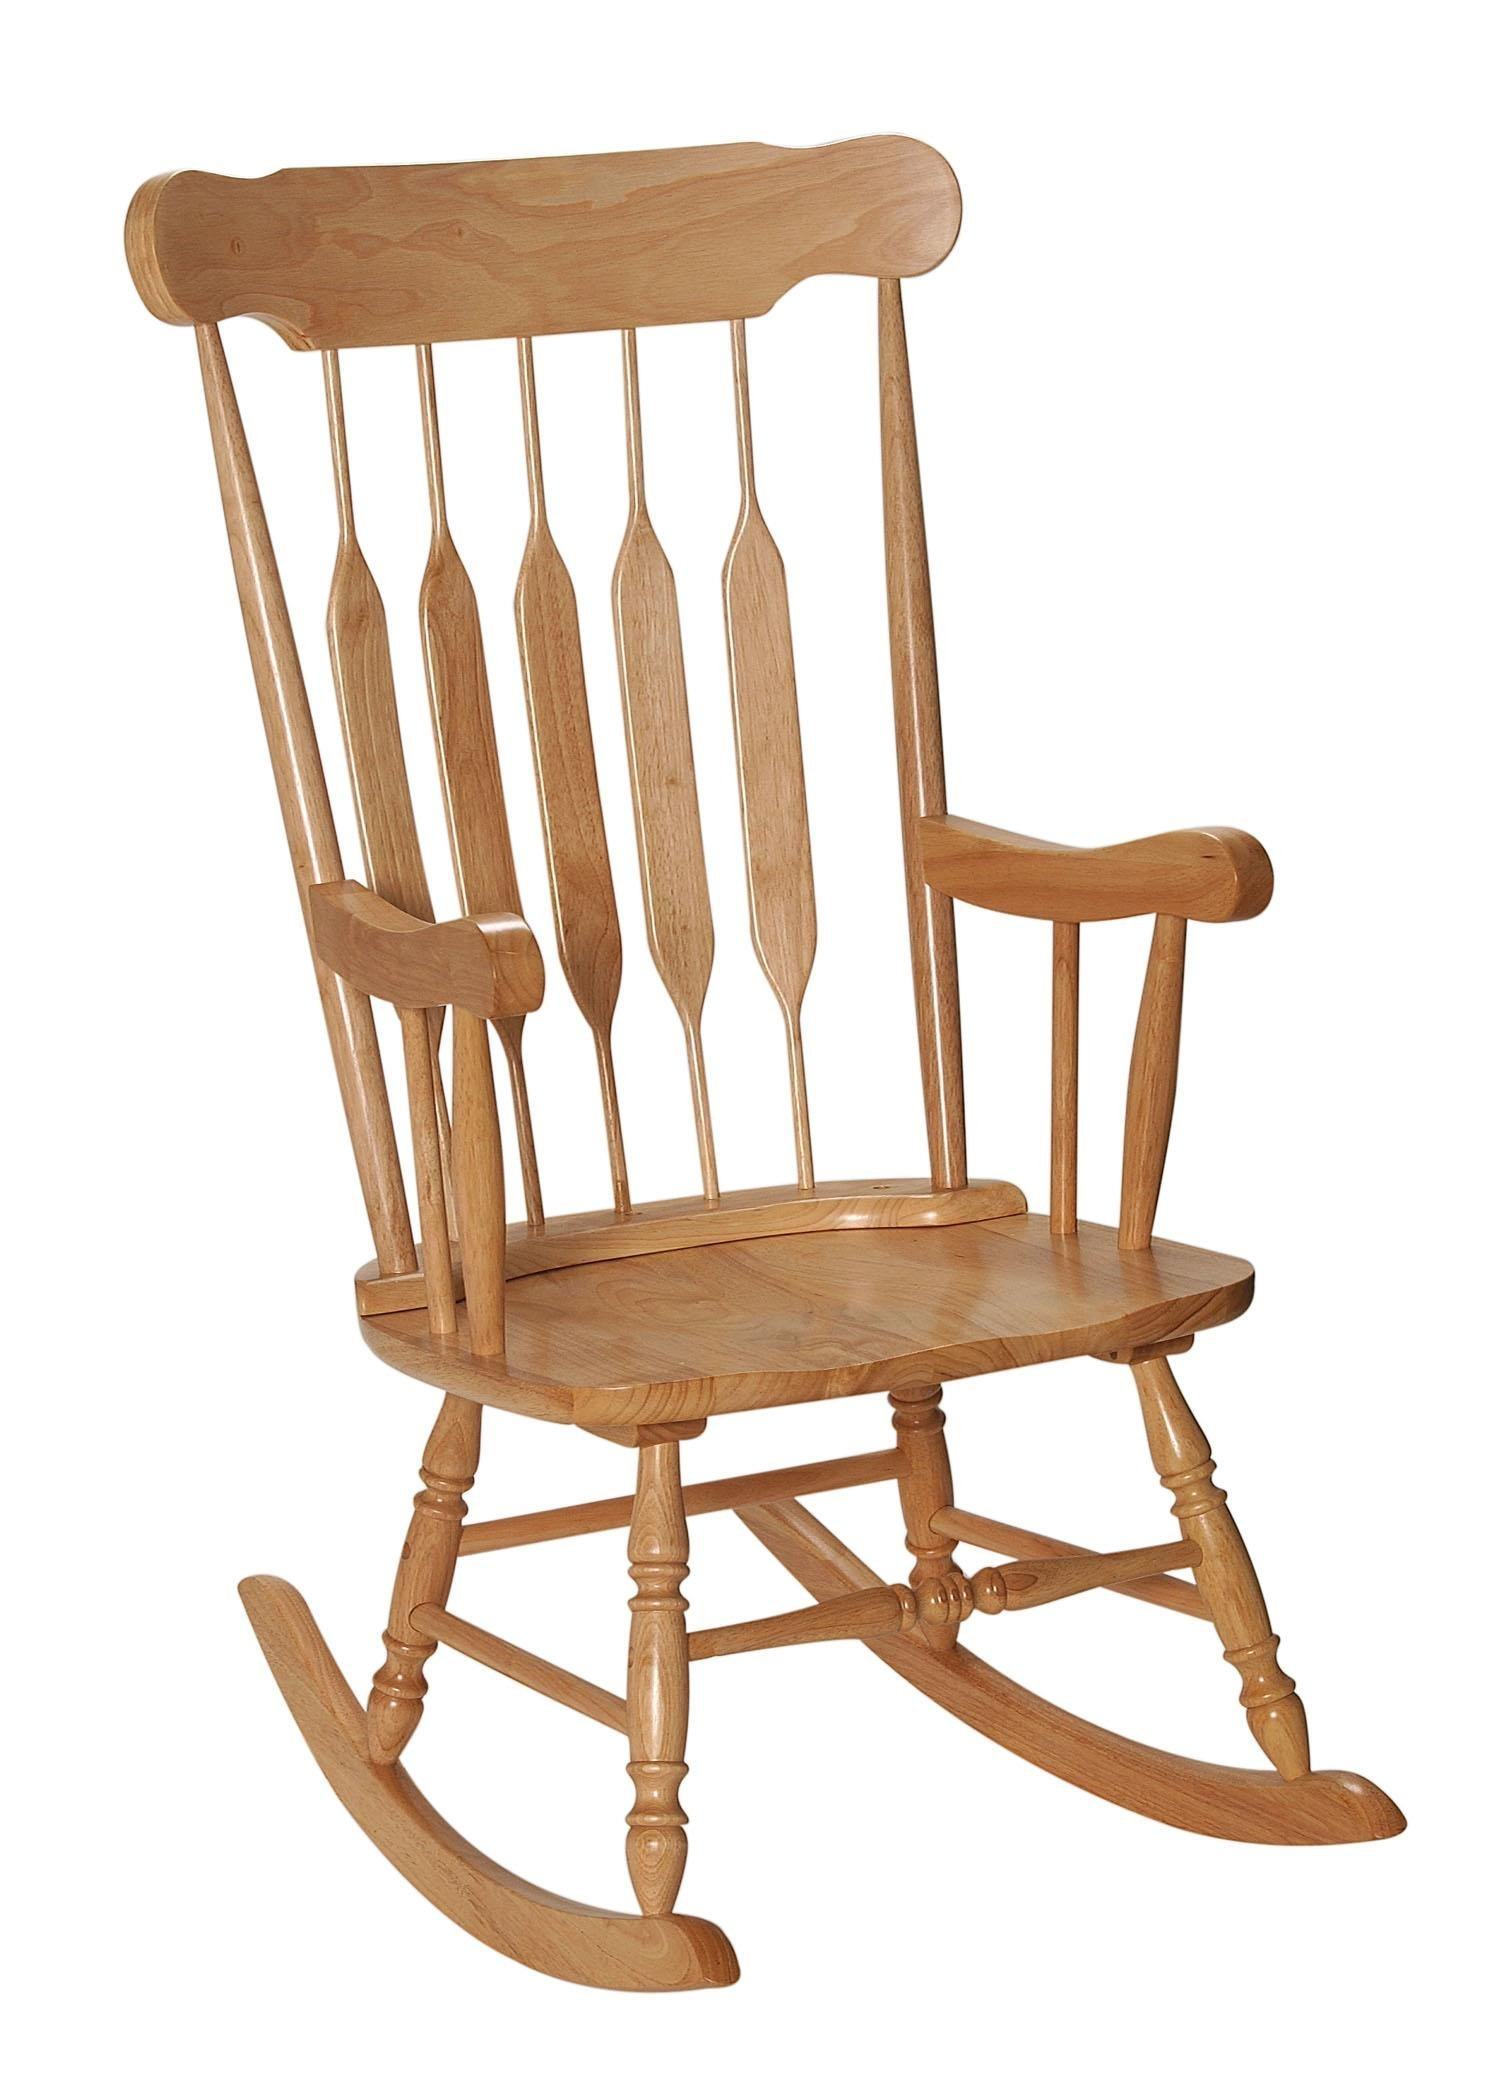 GiftMark 1233-3800N Adult Solid Wood Rocking Chair, Natural by GiftMark